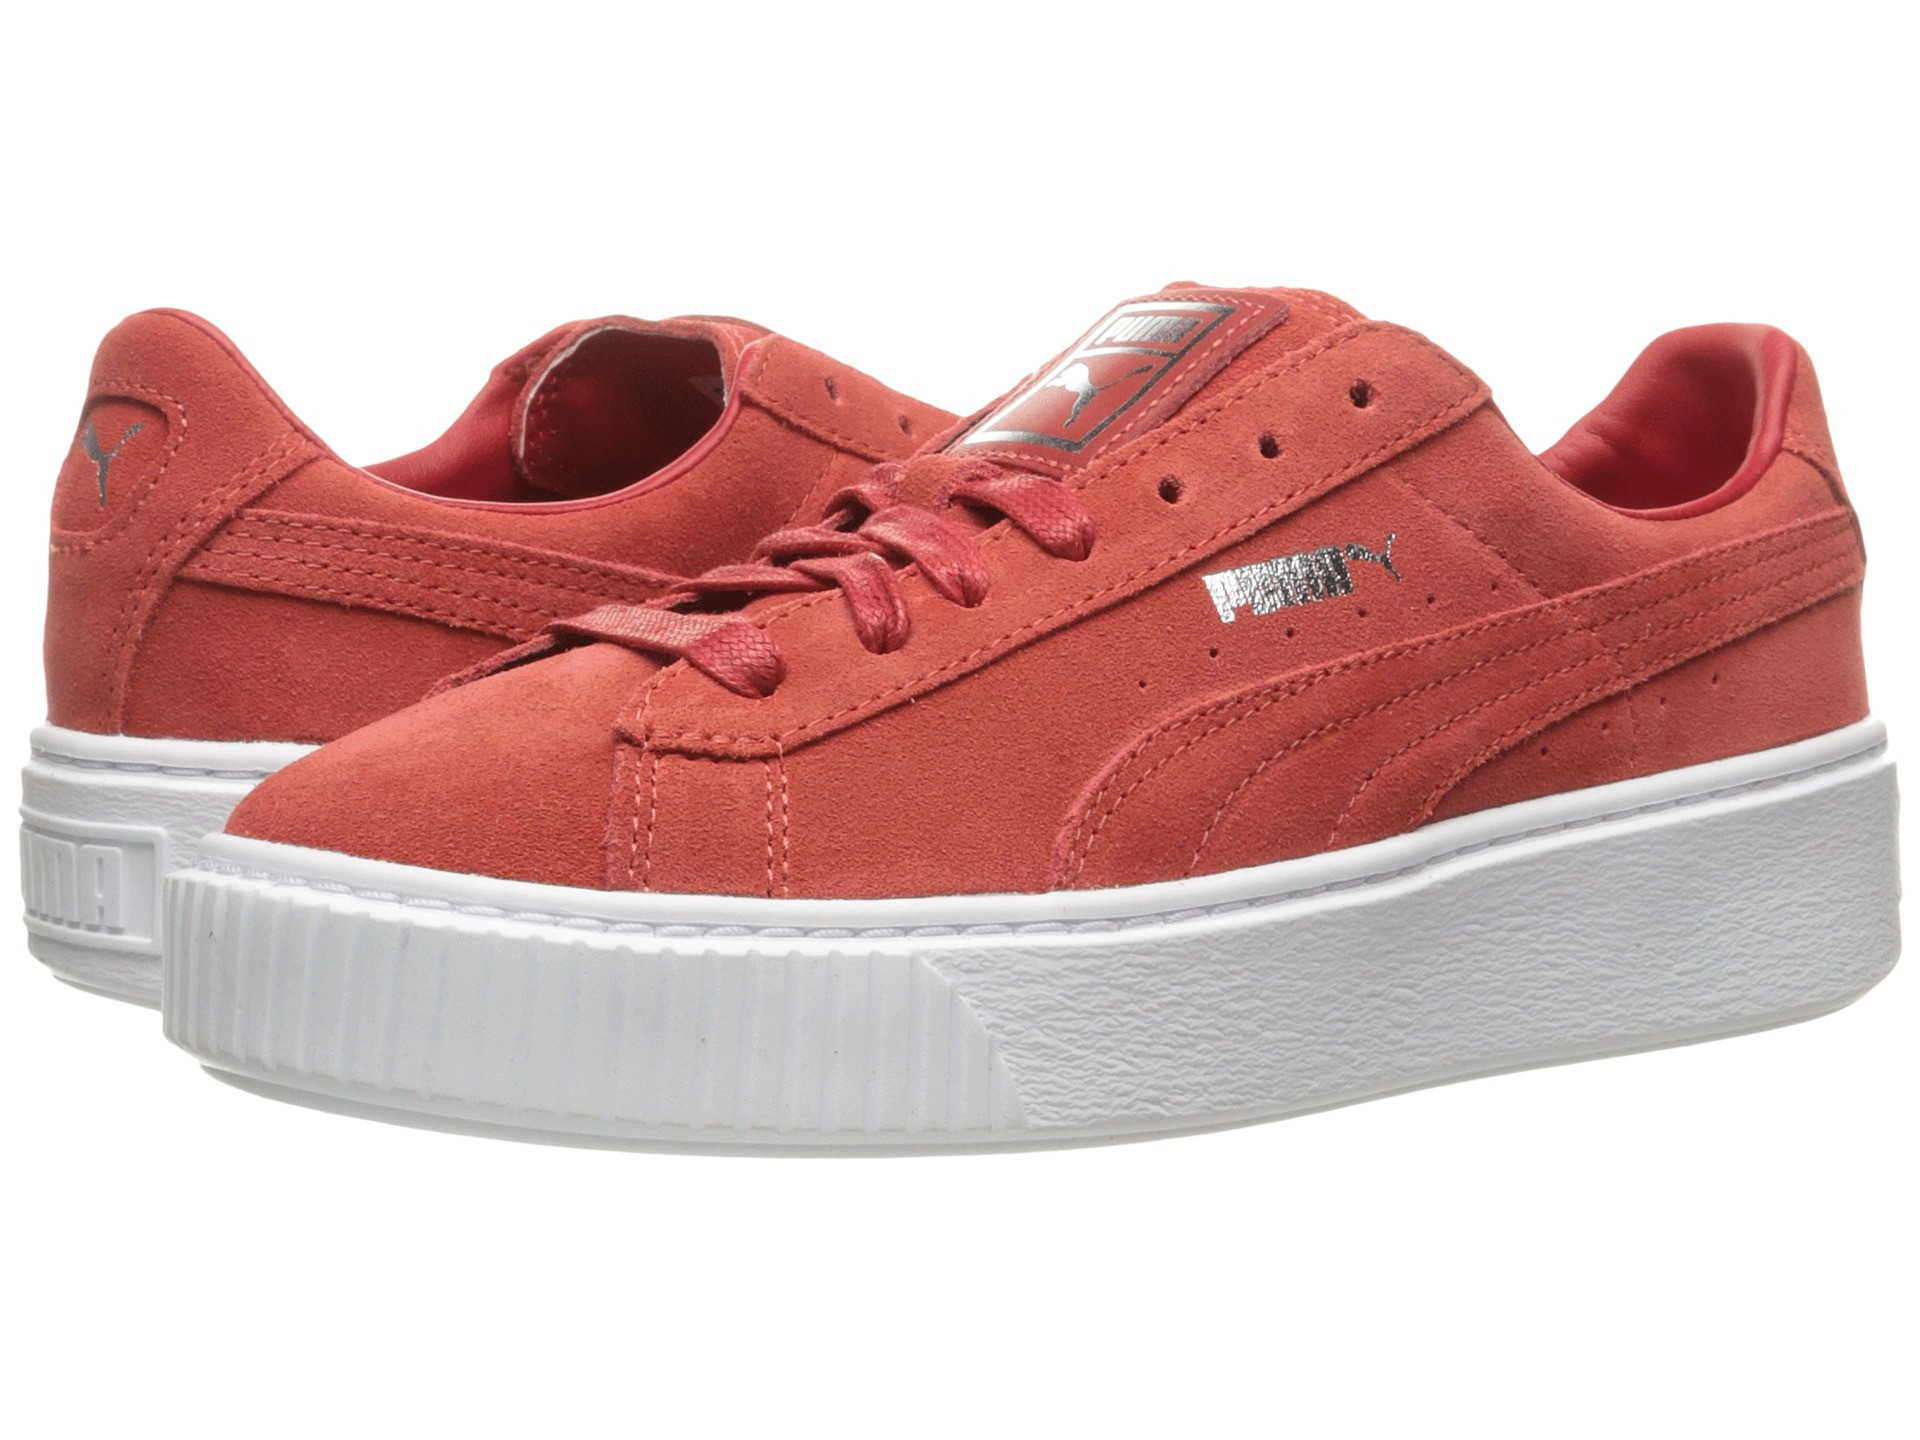 0986ba38f18 ... the Suede is arguably PUMA s most iconic sneaker. Today